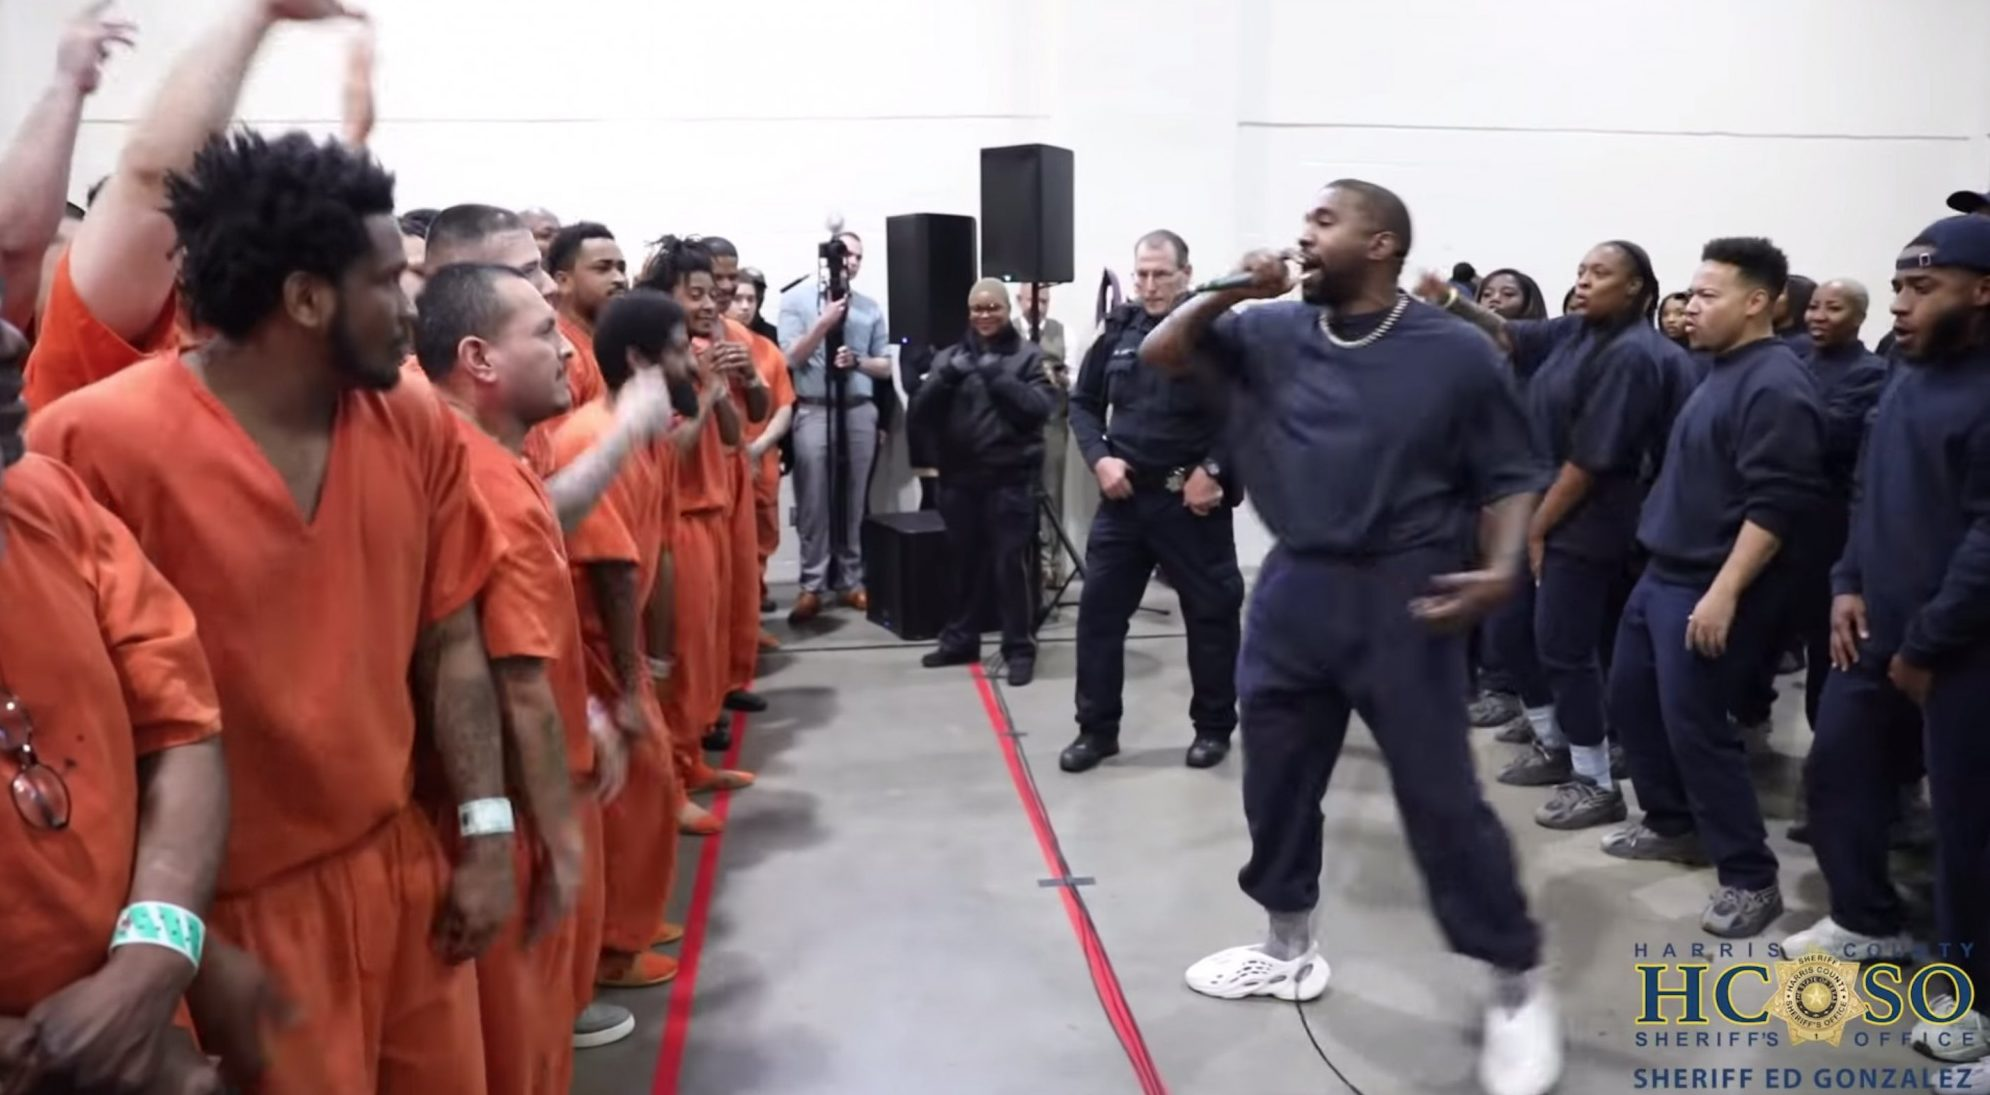 Kanye West performs at a surprise concert for inmates in the Harris County Jail in Houston, Texas, on Nov. 15, 2019. (Harris County Sheriff's Office)